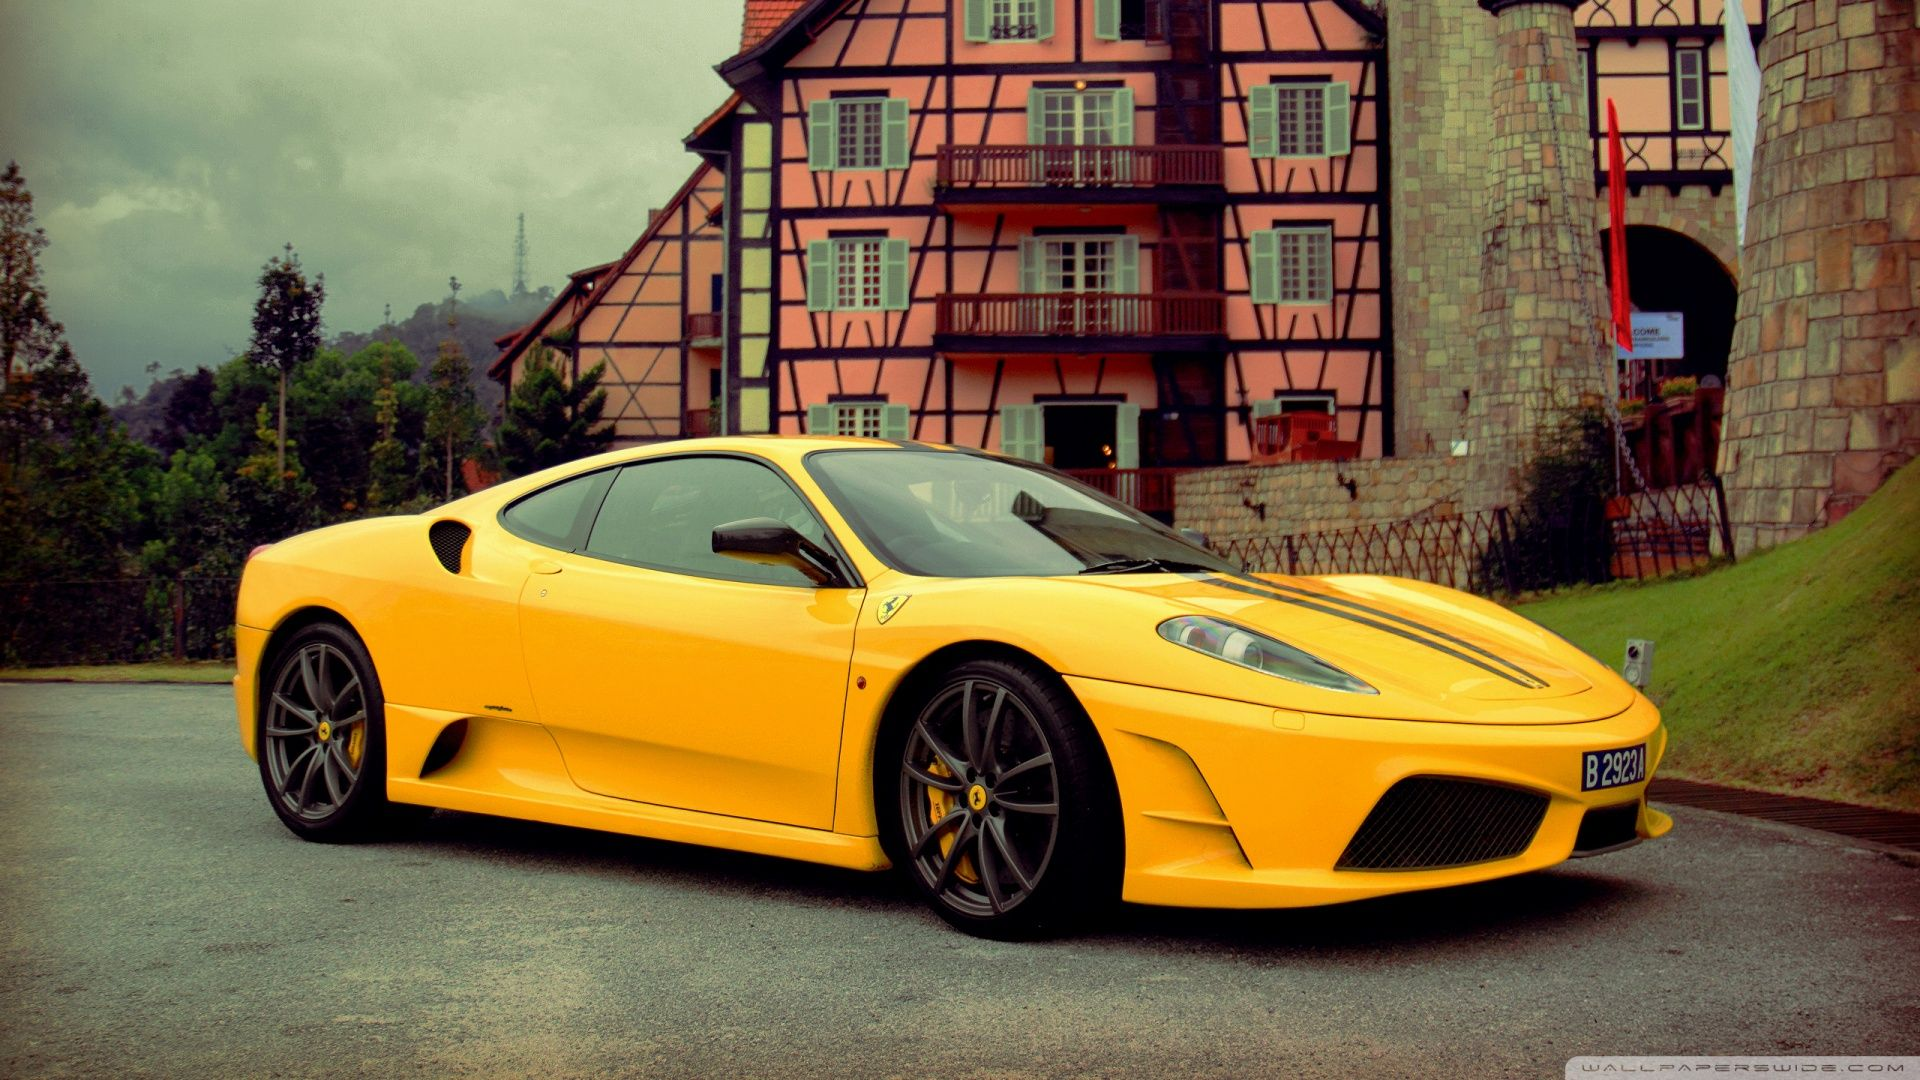 Ferrari F Scuderia wallpaper Car wallpapers Ferrari